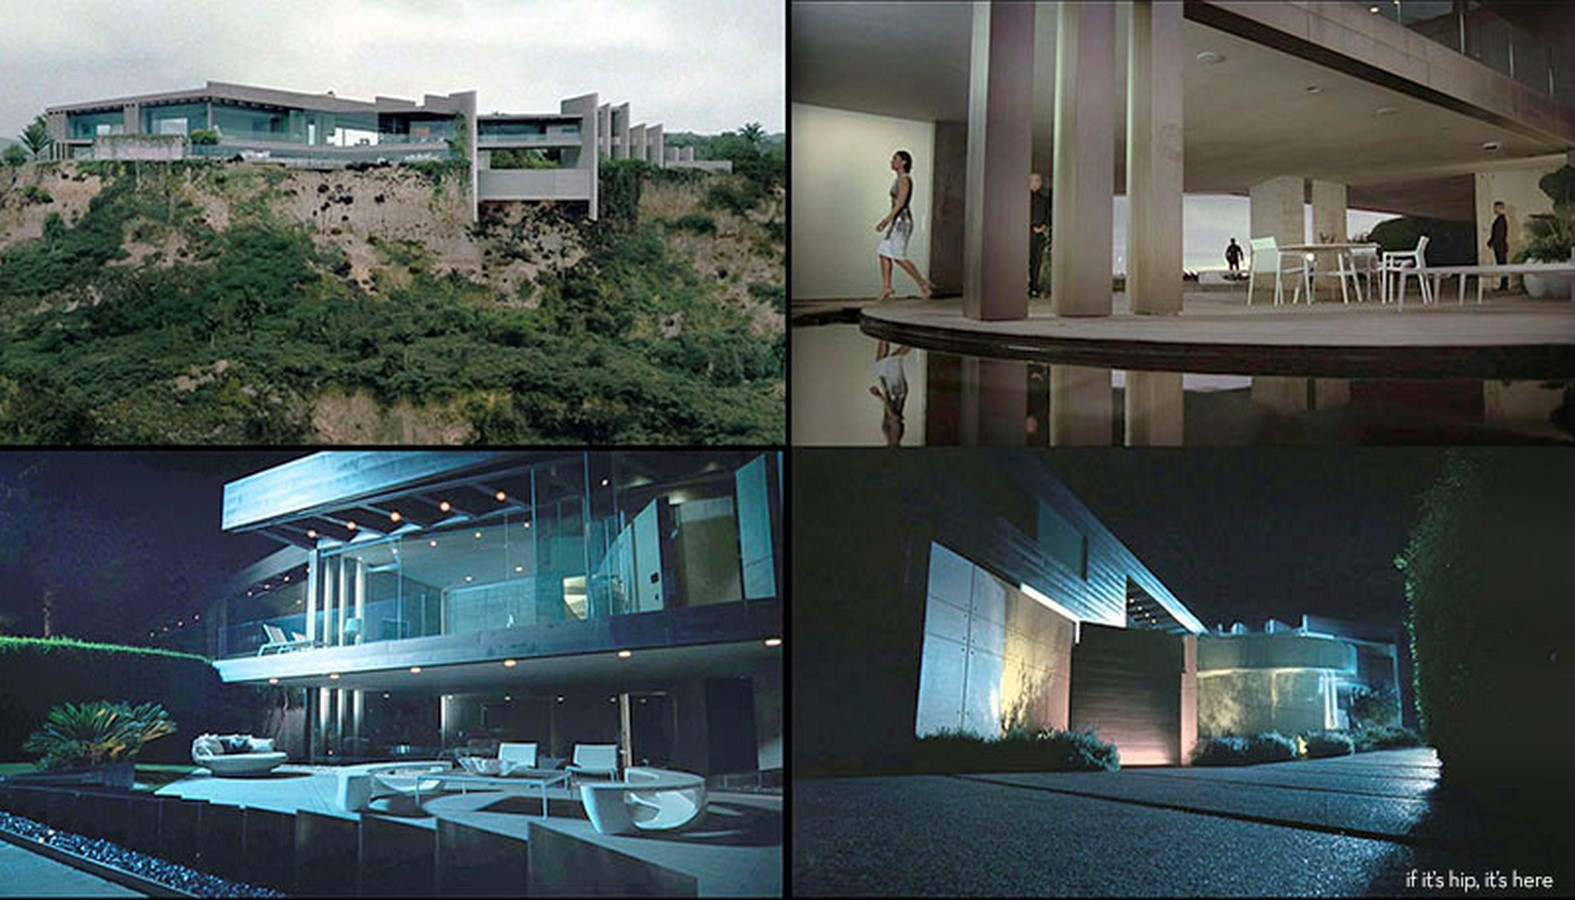 The 'Future' architecture of Westworld - Sheet5